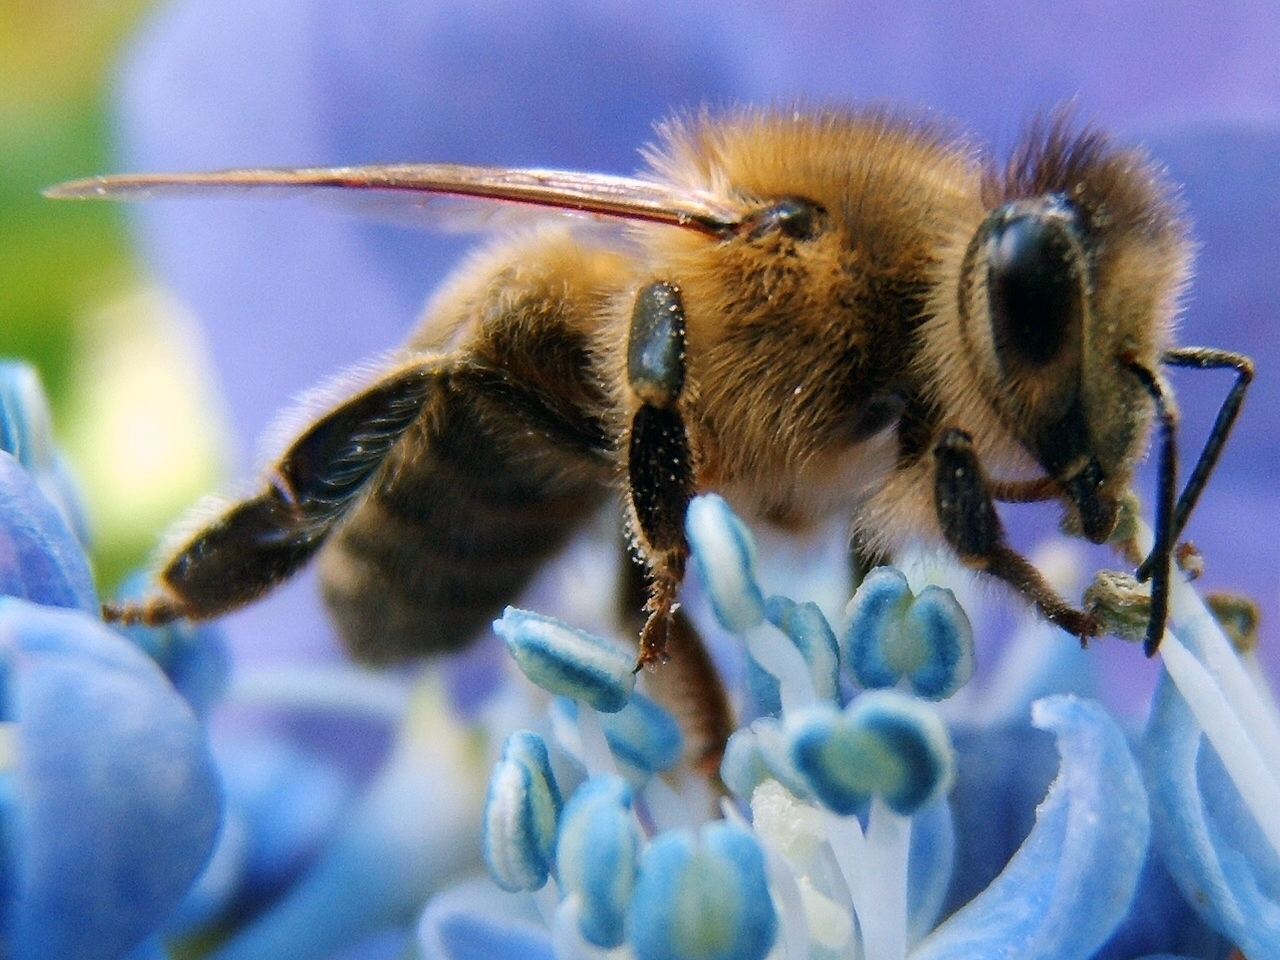 Animals eating Animals: Do Bees have teeth? How do they sting?